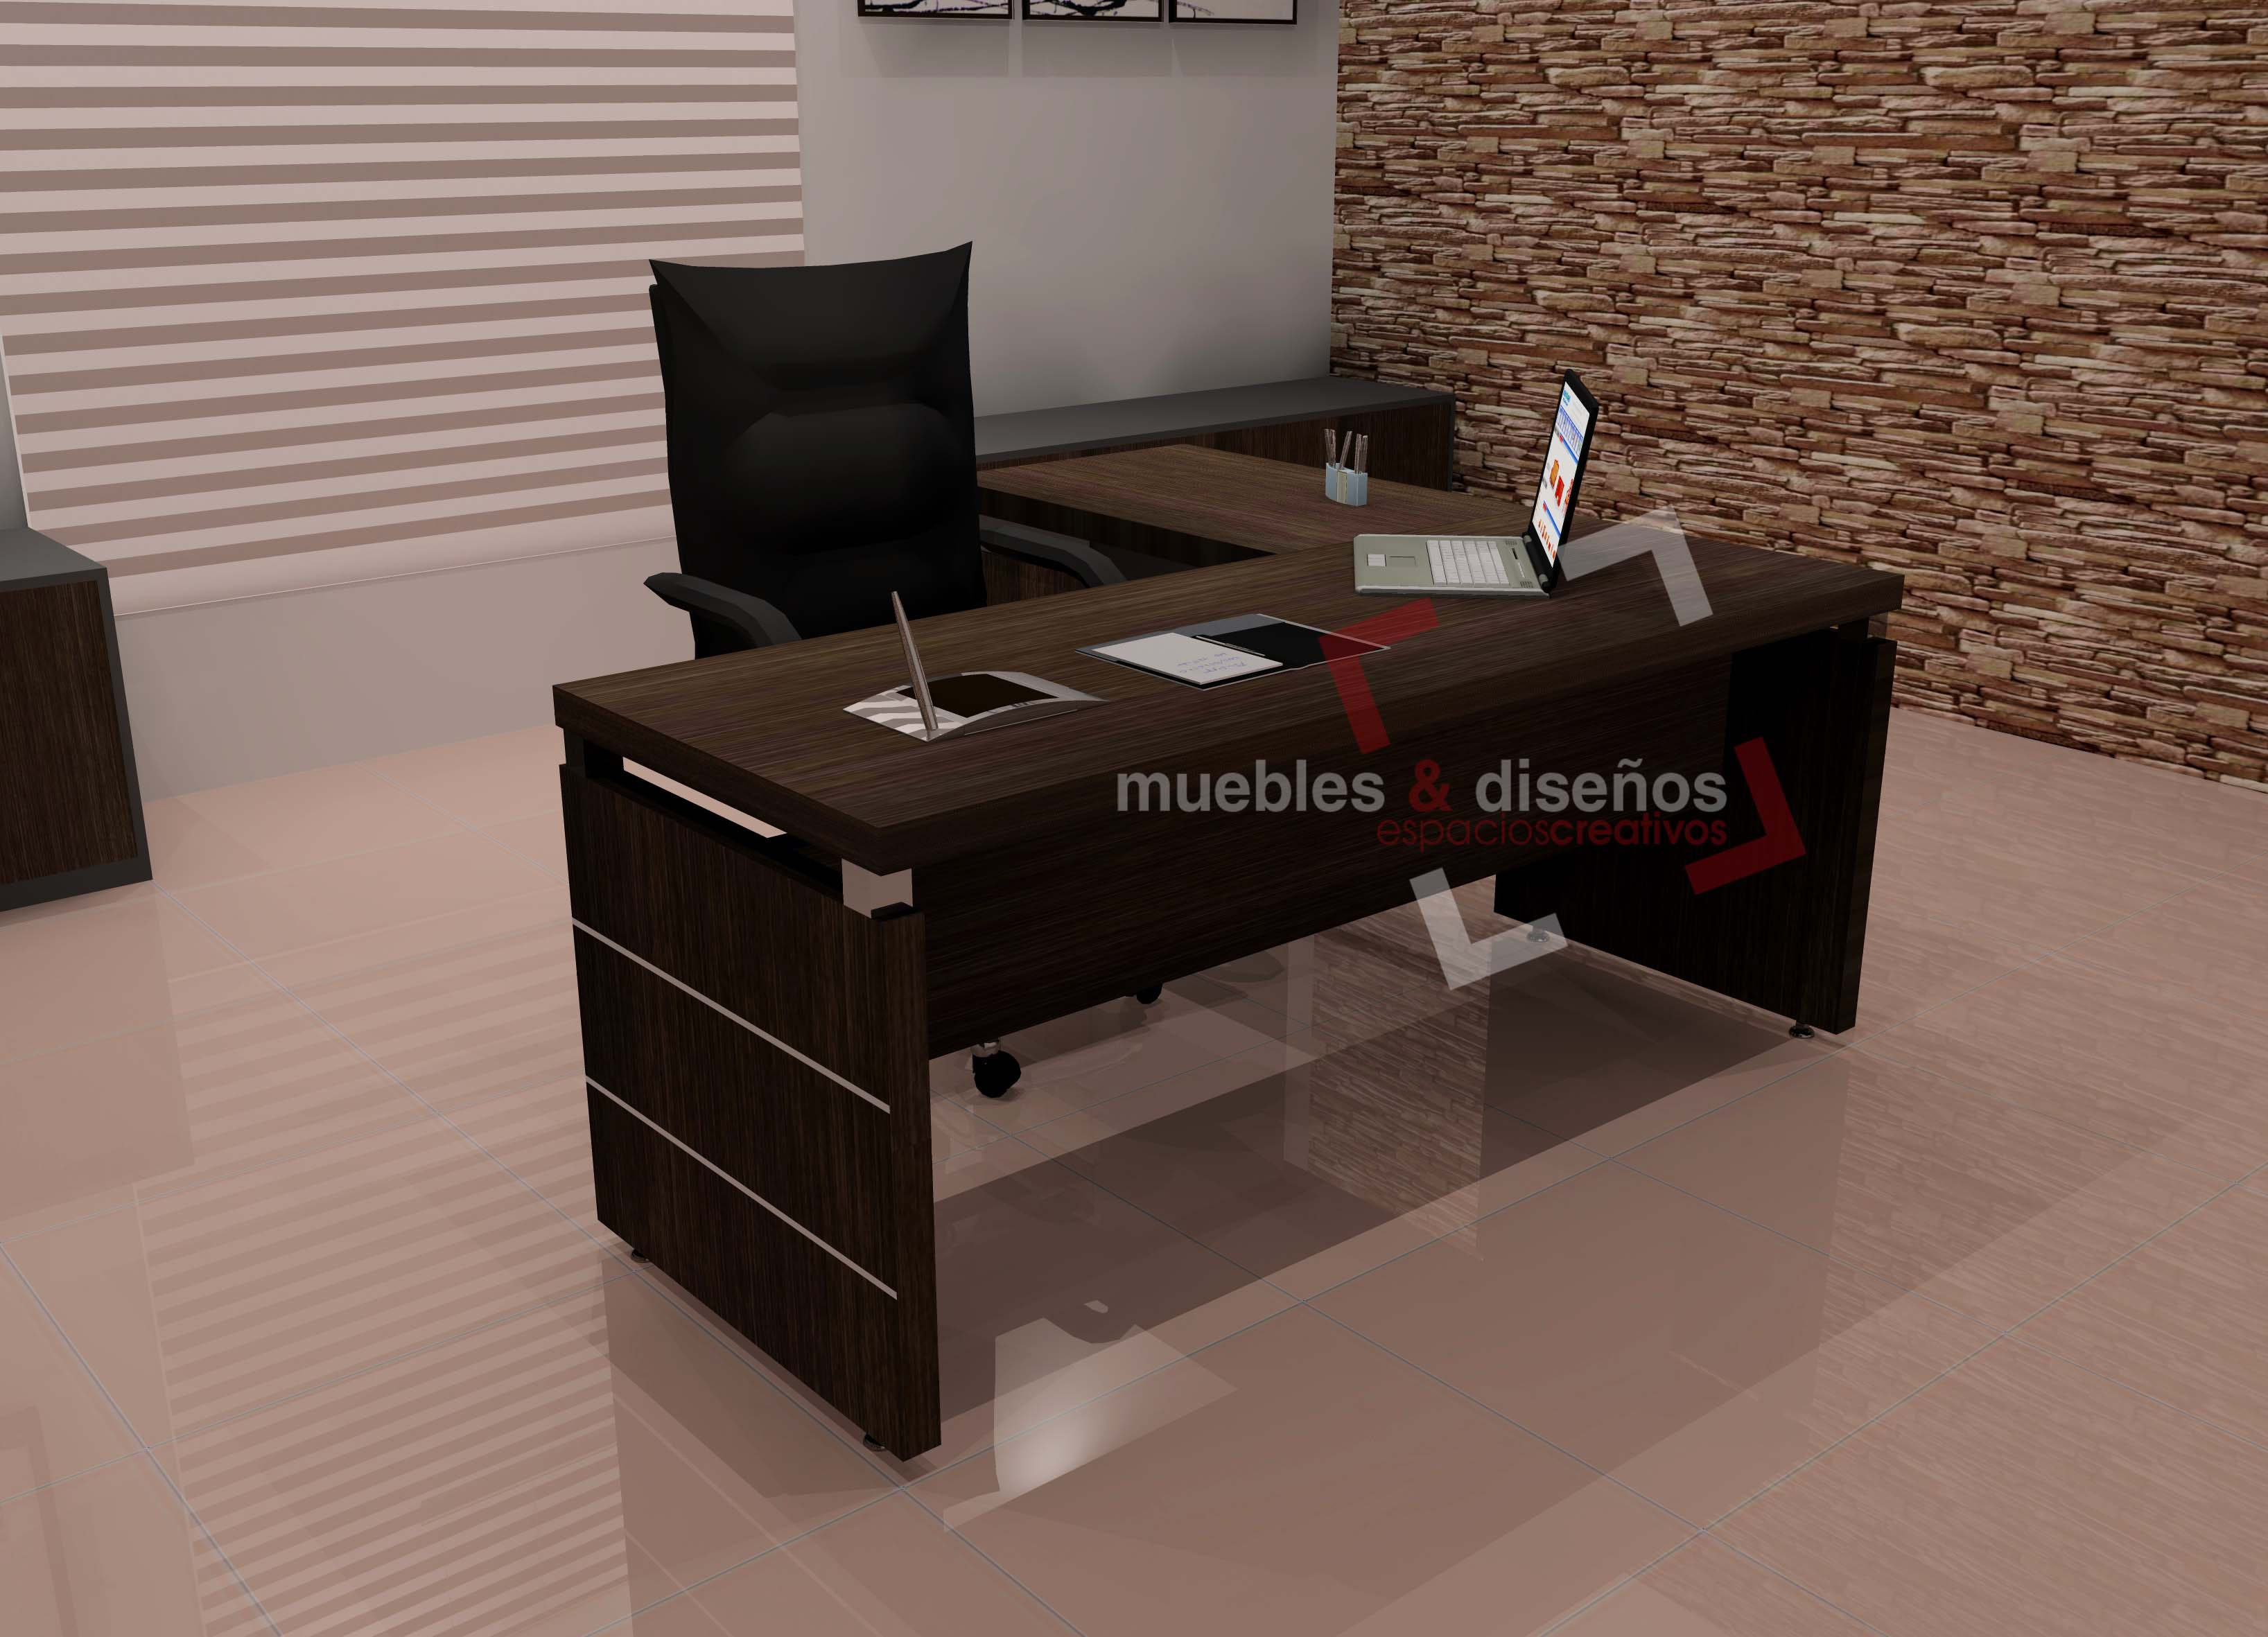 Projects 3 Muebles Y Dise Os Part 3 # Muebles Y Disenos